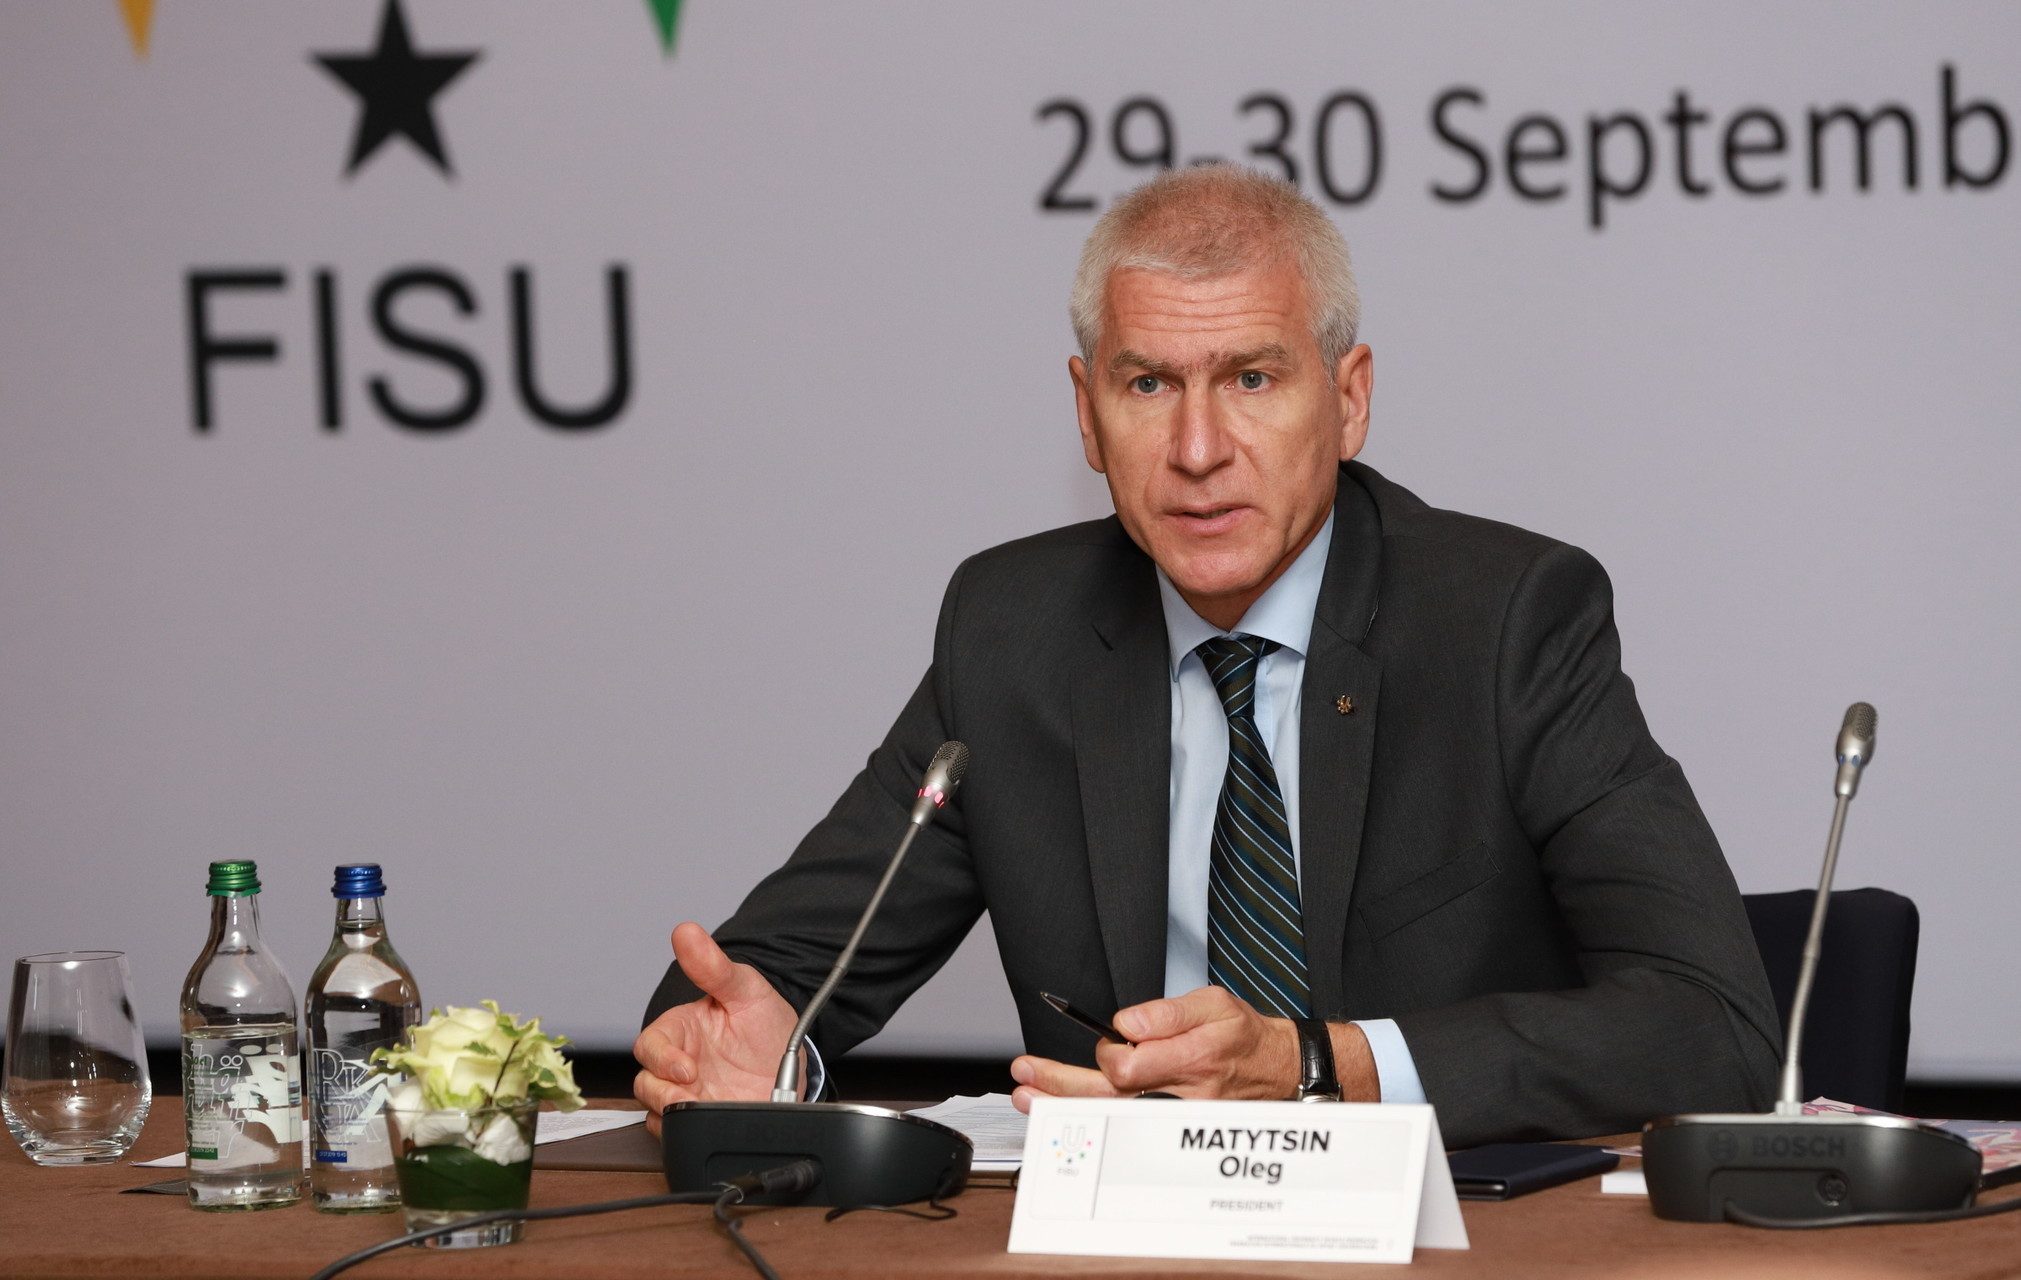 """FISU President Matytsin labels 2018 """"productive"""" in end of year message"""